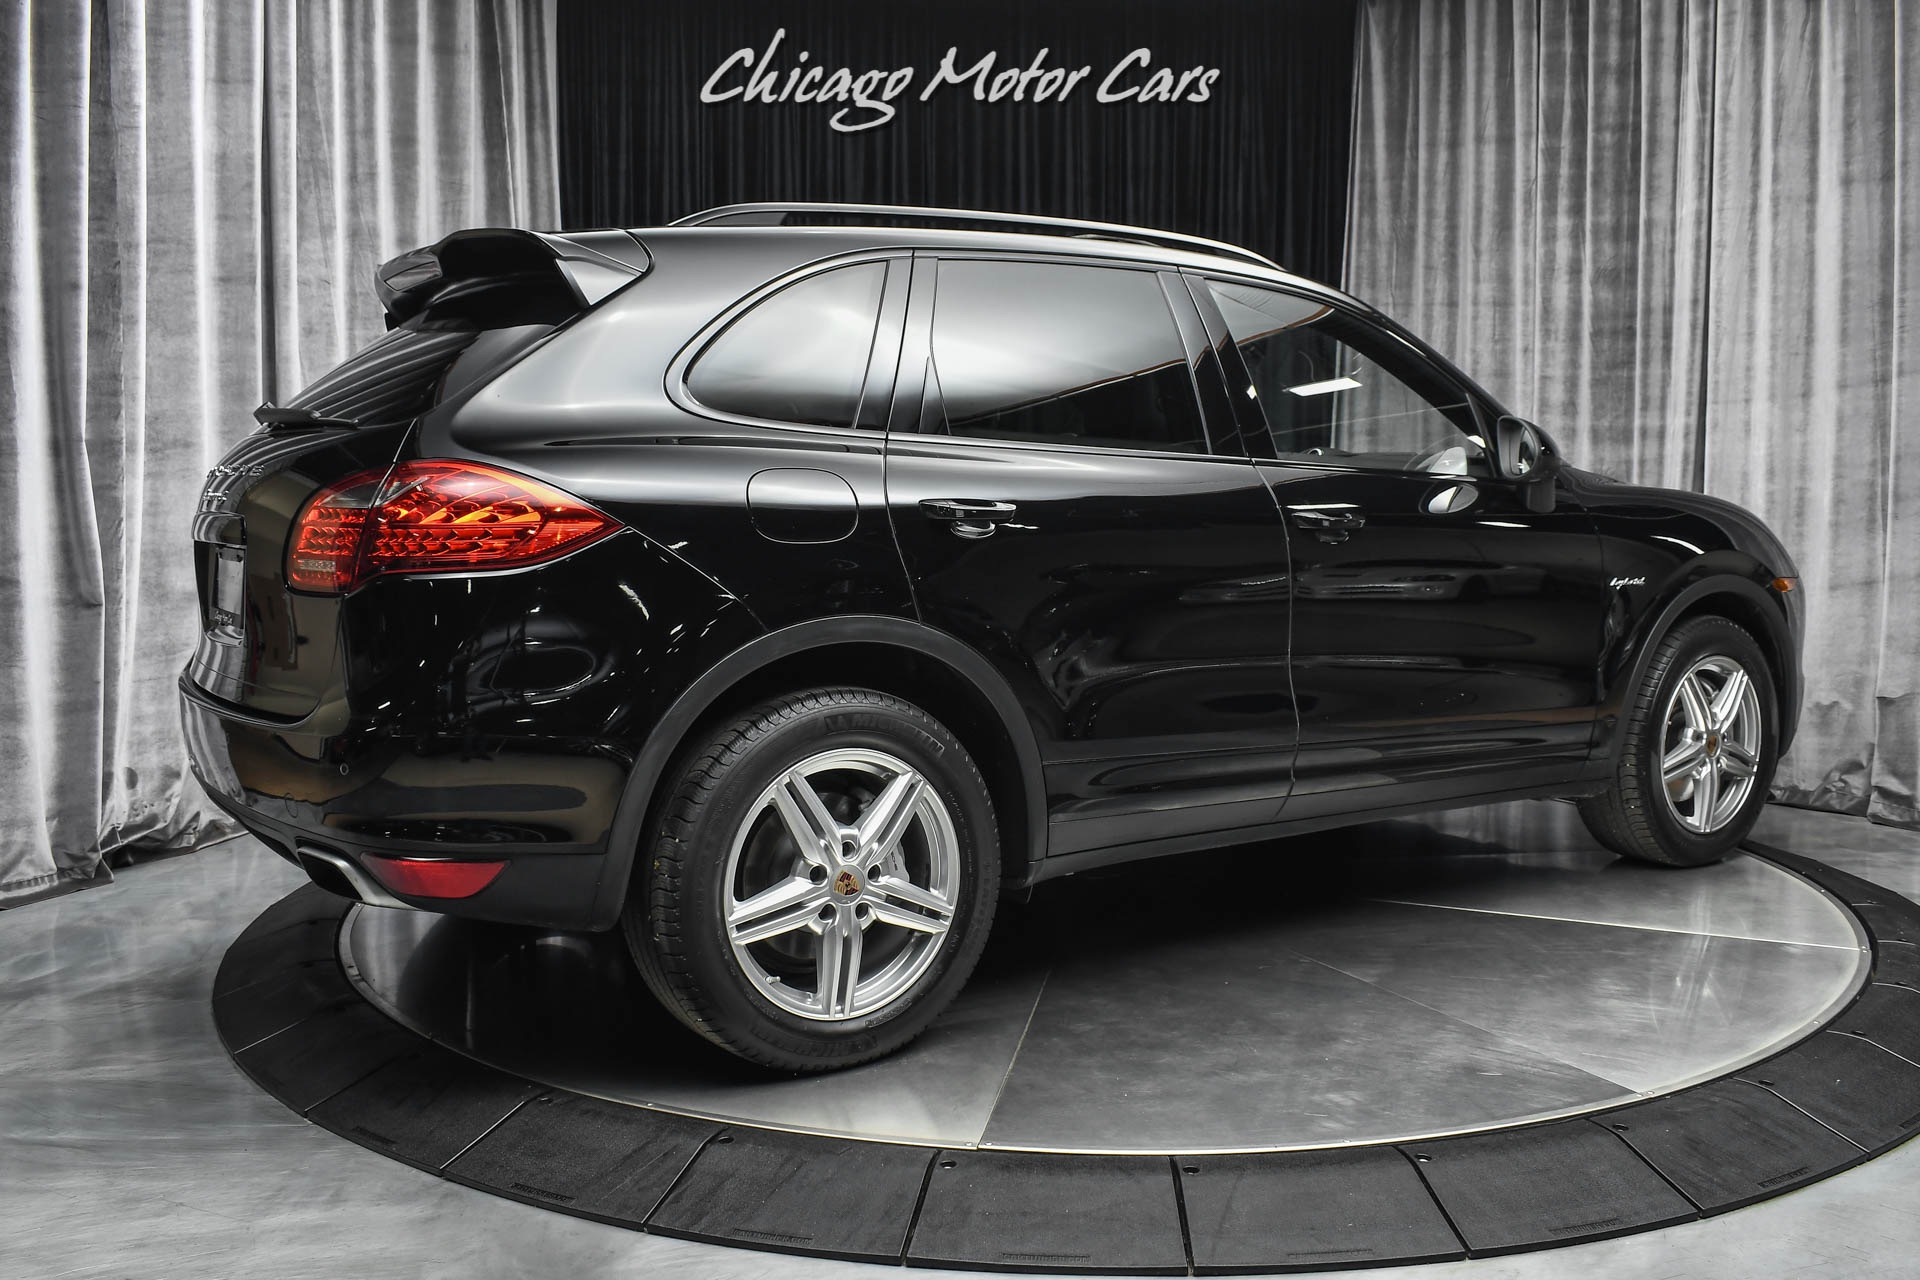 Used-2014-Porsche-Cayenne-AWD-S-Hybrid-Convenience-Package-Navigation-PDLS